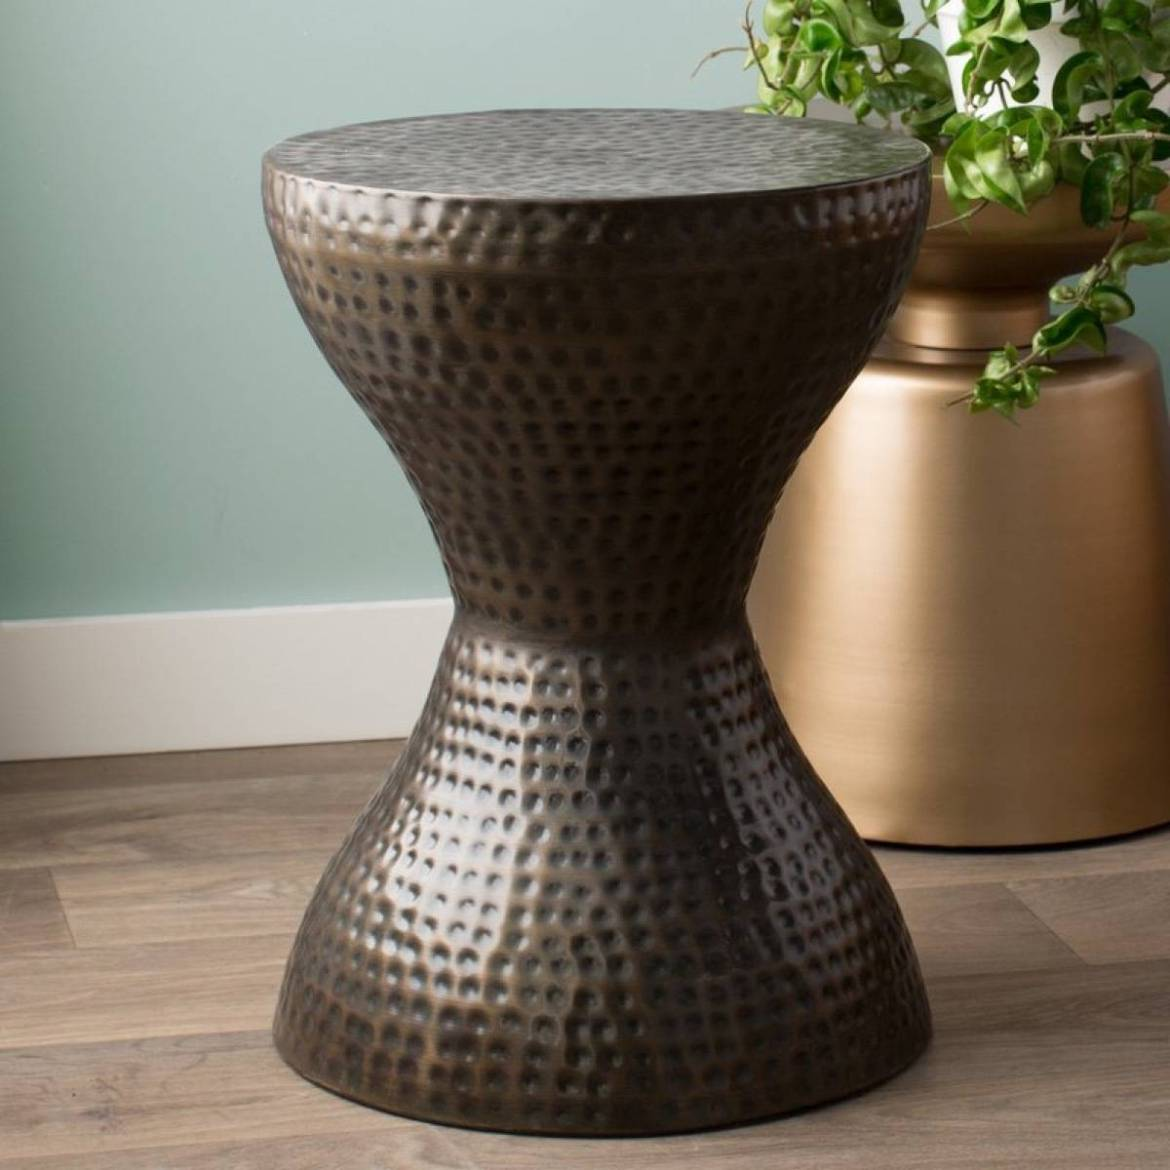 Textured end table from All Modern